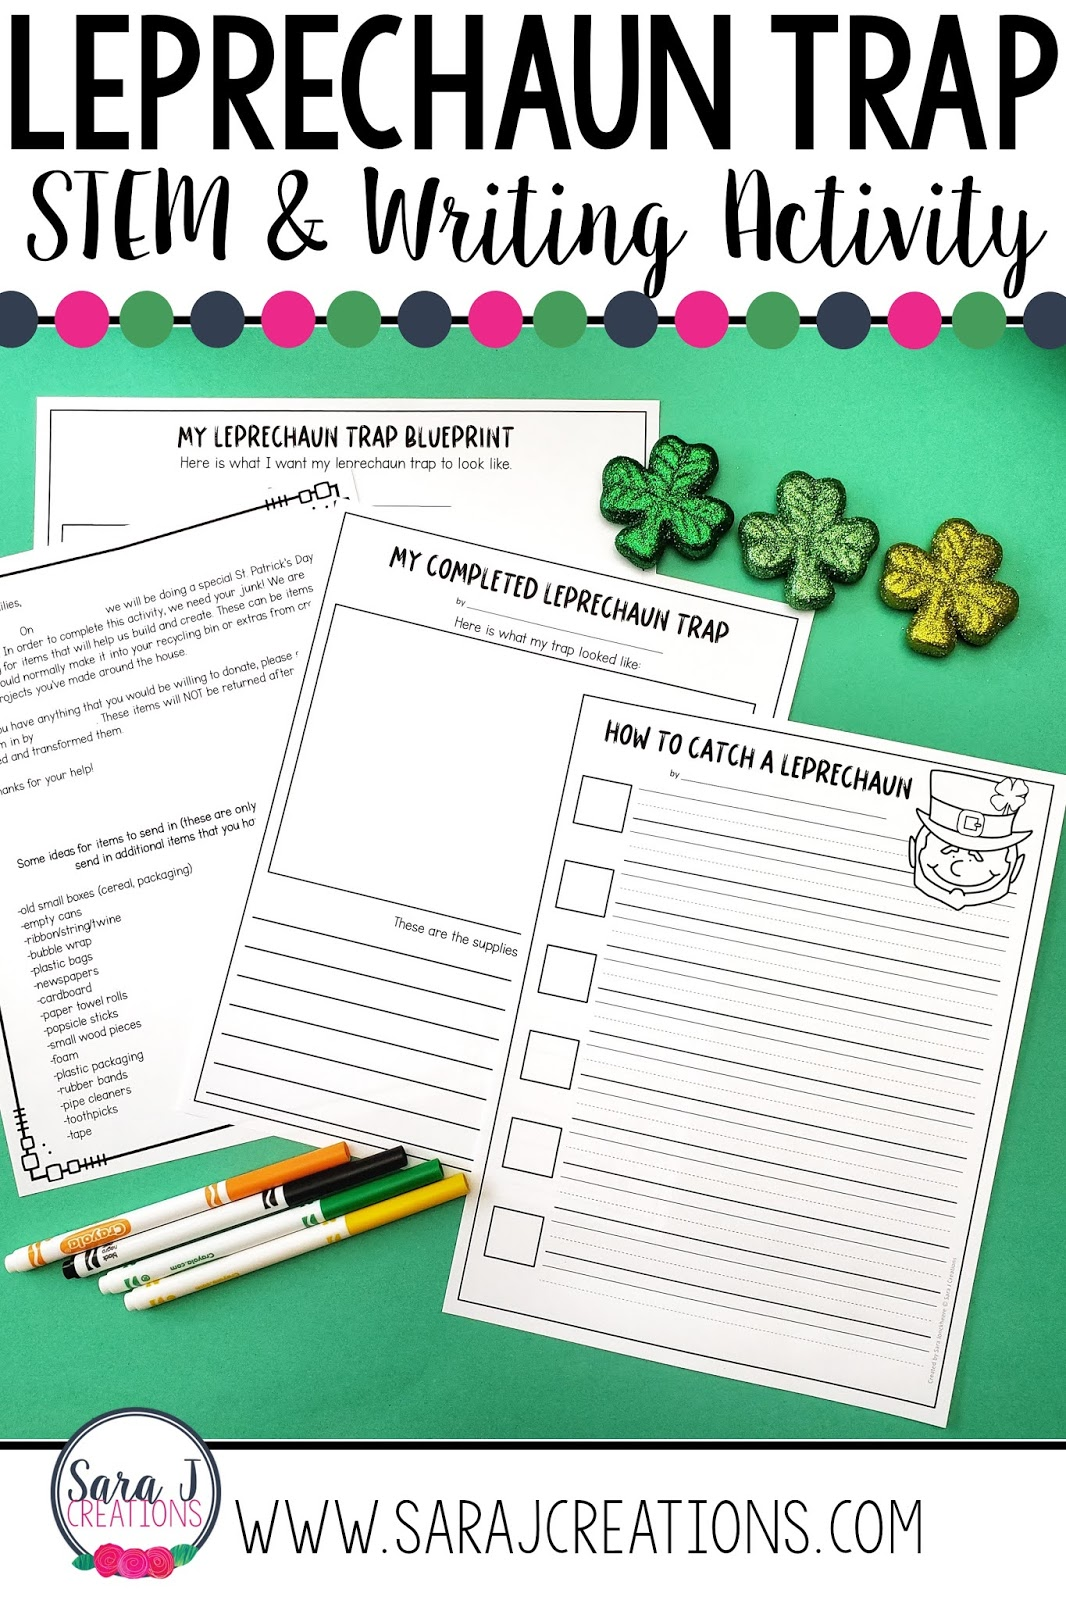 Check out this leprechaun trap making idea for kids. An easy to use project idea where students create a leprechaun trap out of recycled items and then write how to catch a leprechaun. Even includes a letter to parents to help gather supplies for building. So much St. Patrick's Day fun!